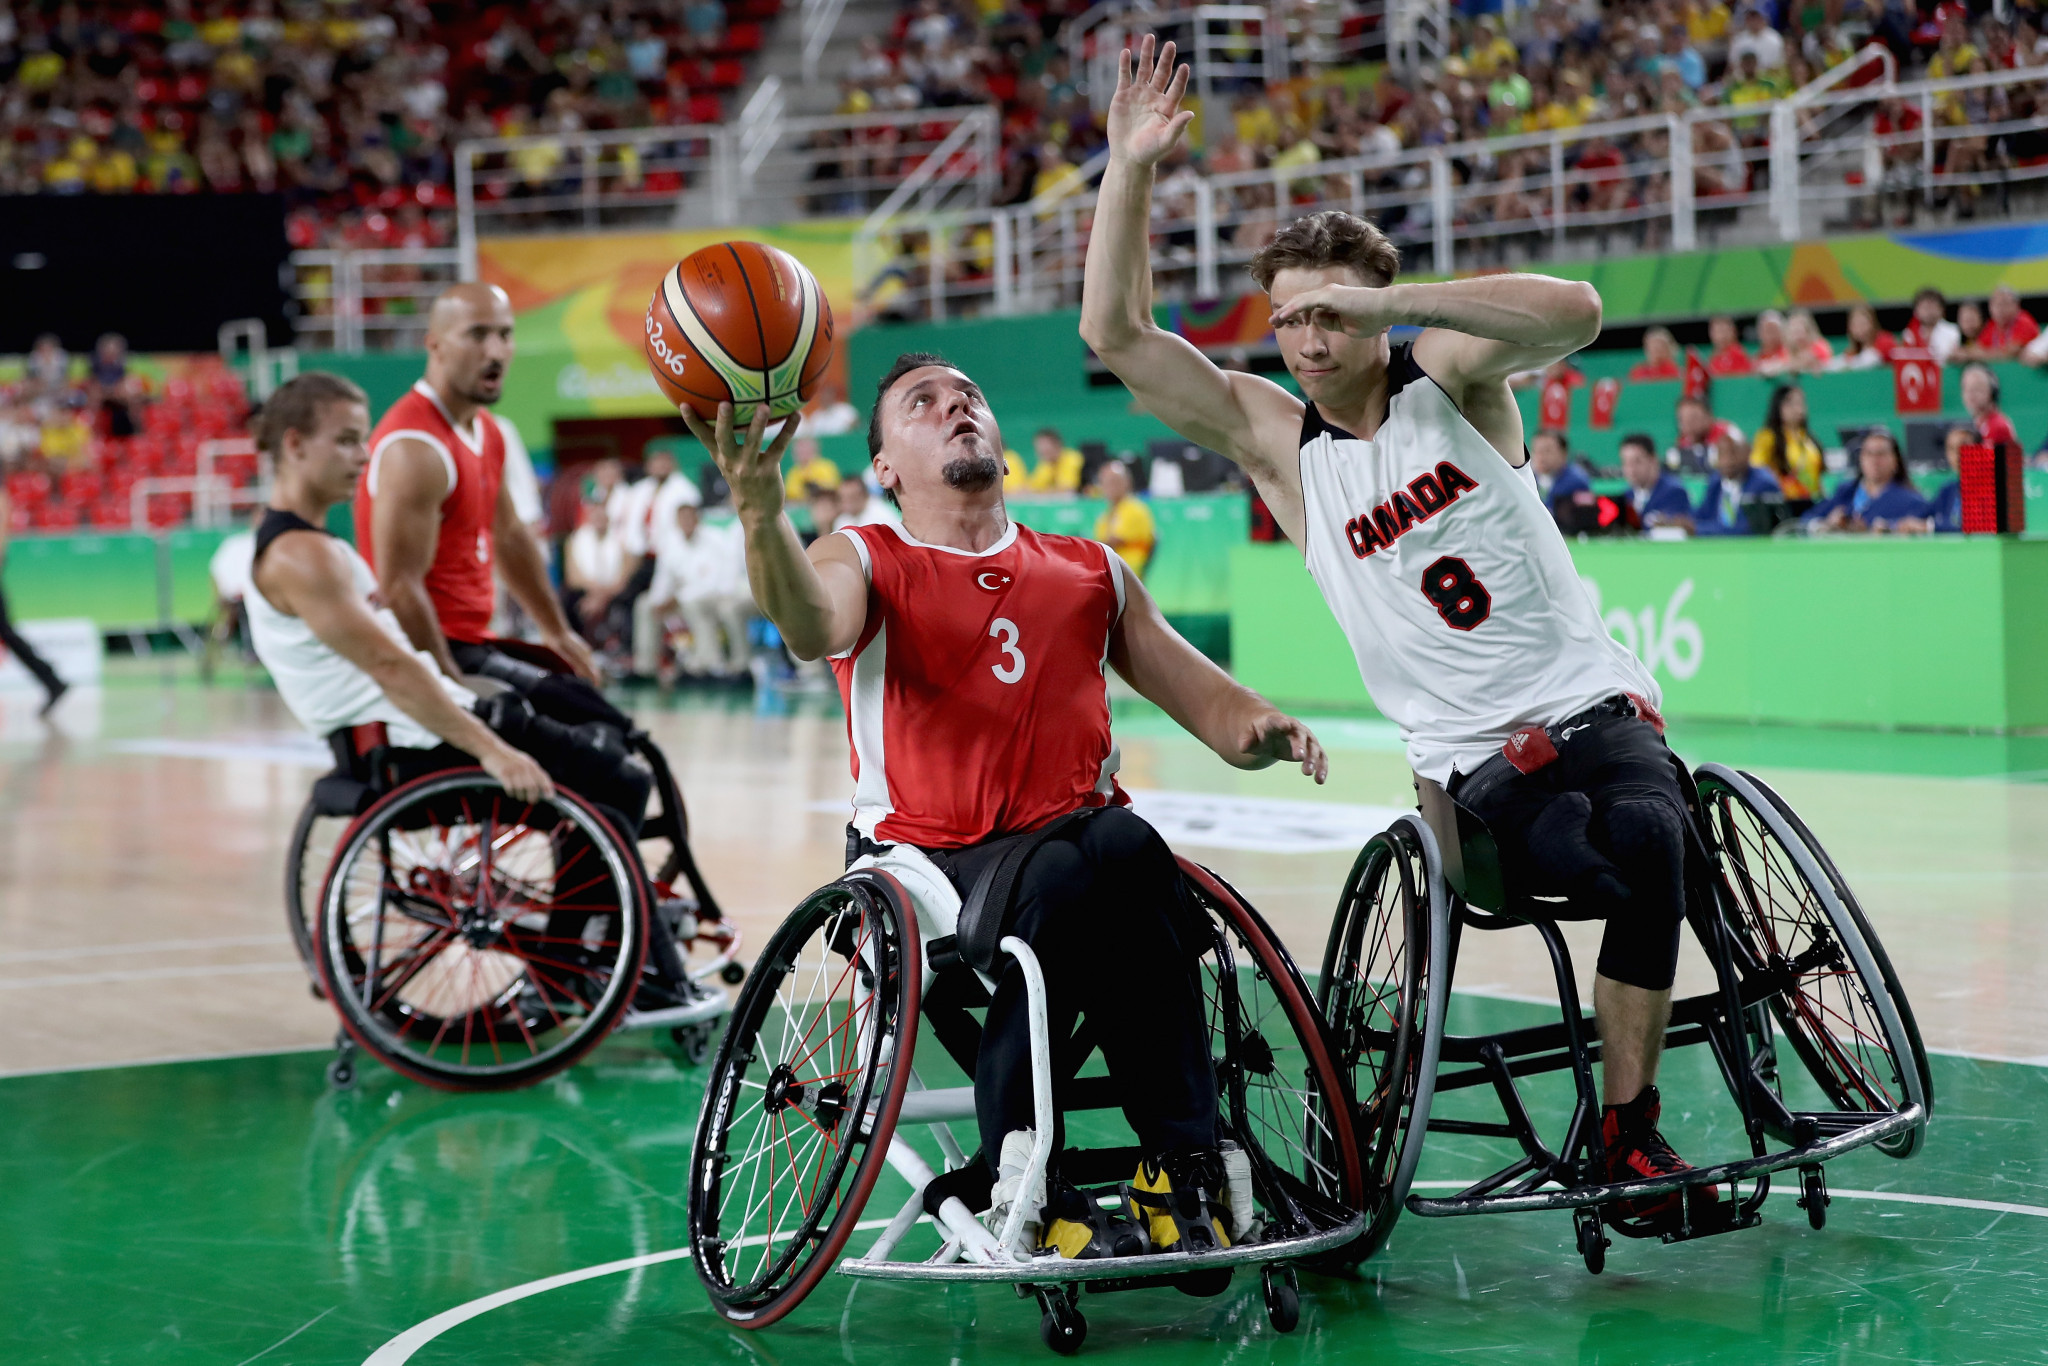 Liam Hickey, right, tries to stop Kaan Dalay of Turkey during a wheelchair basketball match at Rio 2016 ©Getty Images